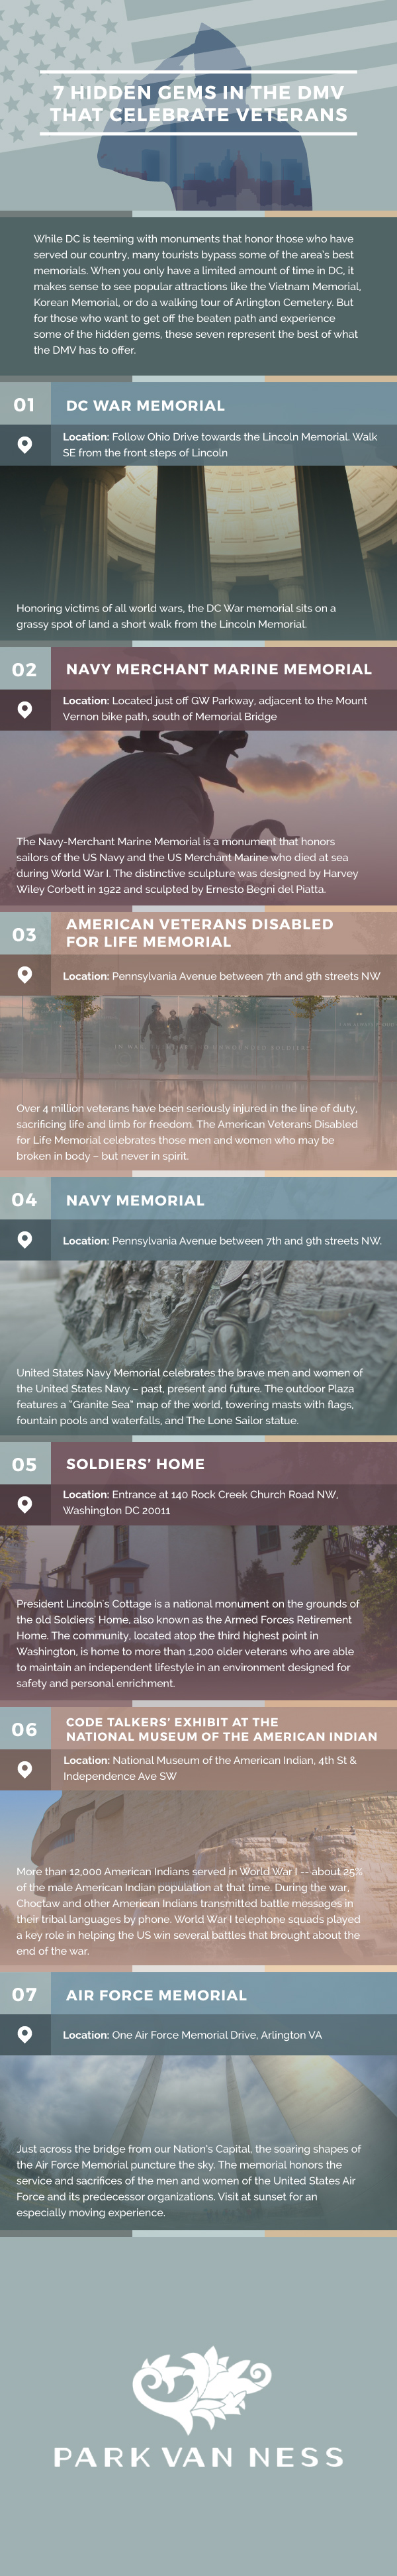 pvn-veterans-locations-3